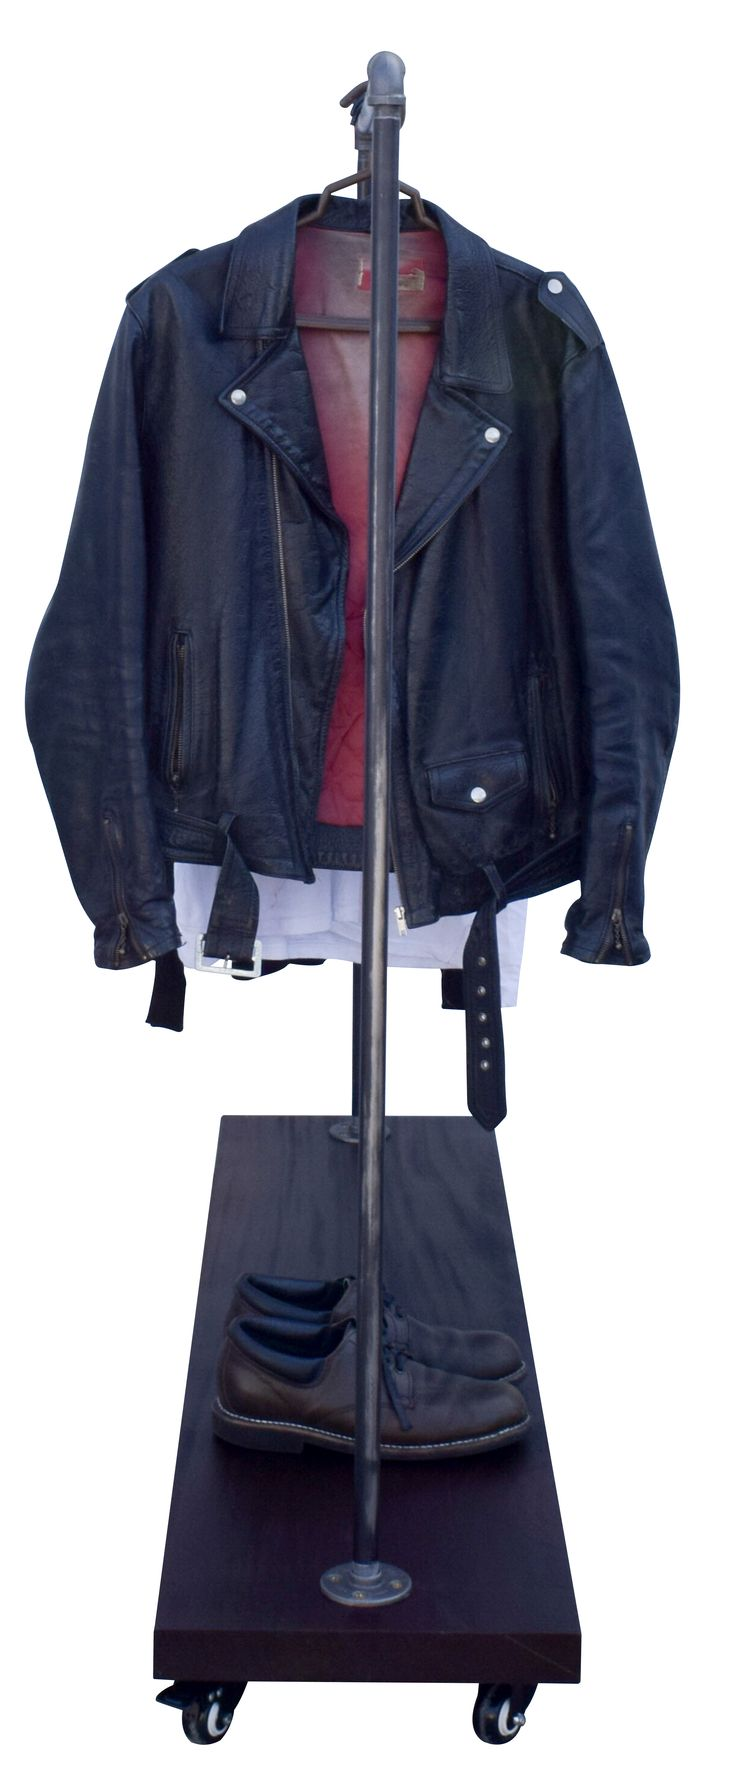 """Industrial Pipe Clothing Garment Rack by DIY Cartel - 48"""" x 48"""" x 48"""" ~ Great for Clothing, Jackets, Retail & Boutique Stores, Markets and Home Storage  Hardware ONLY from AMAZON.COM"""